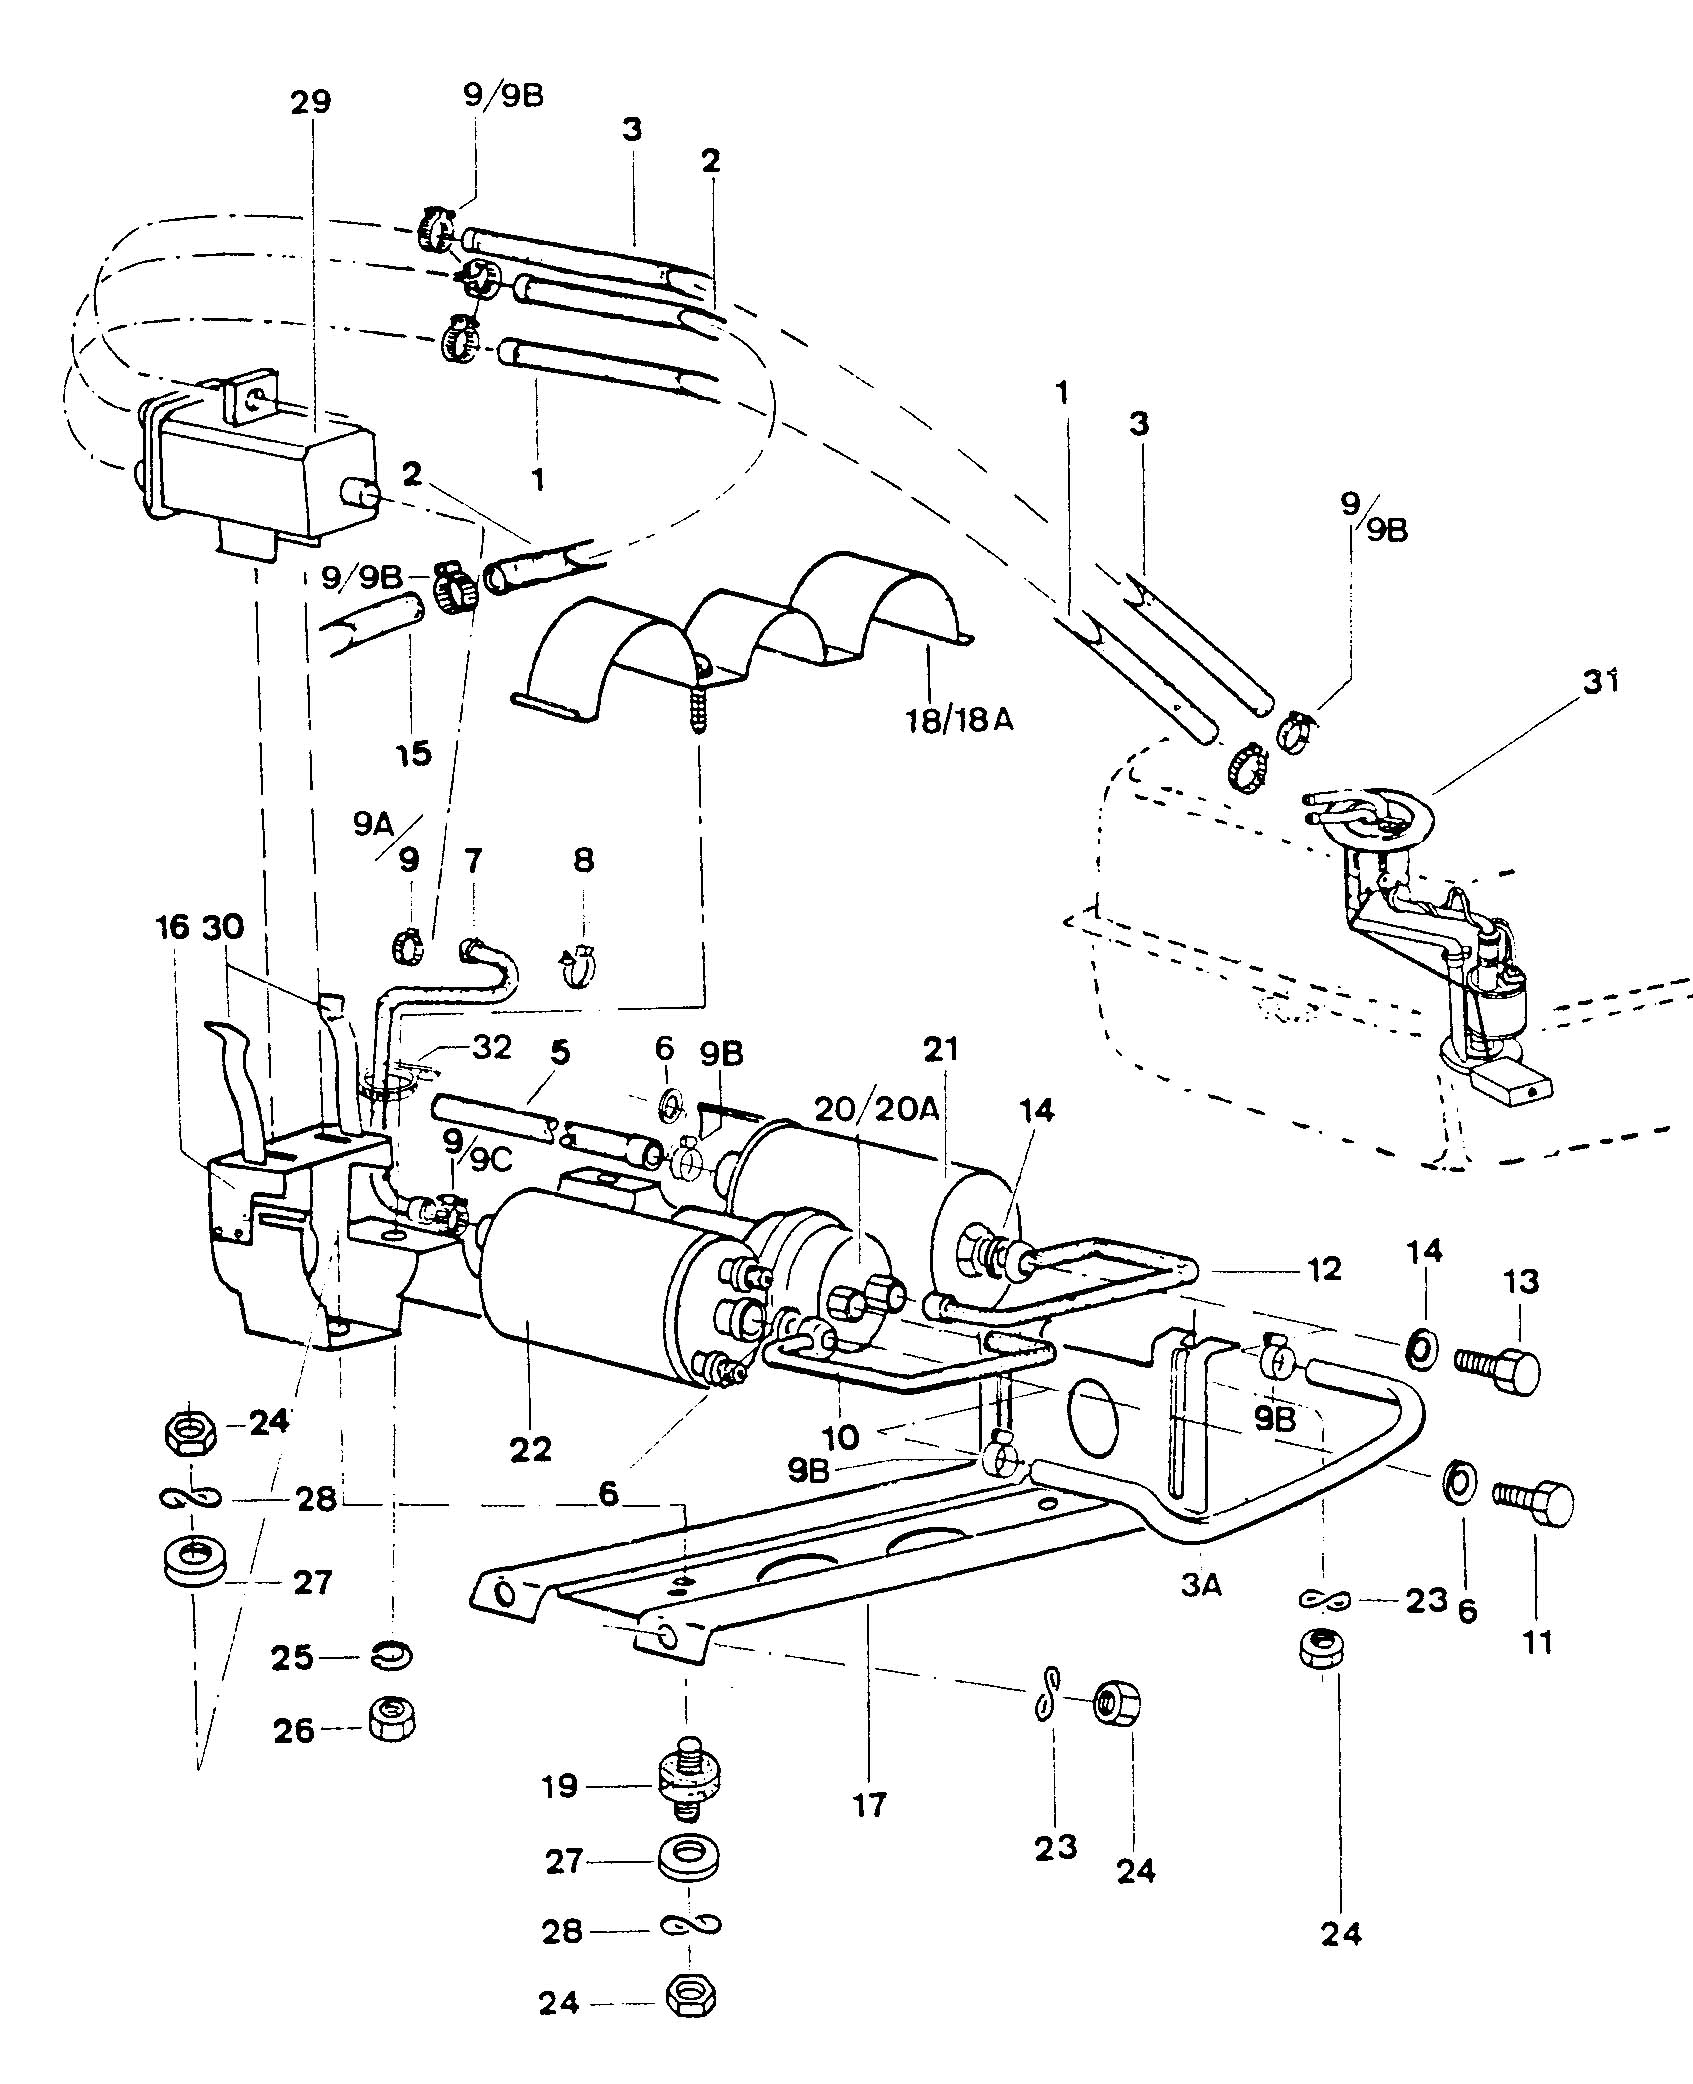 1990 Vw Cabriolet Wiring Diagram, 1990, Free Engine Image